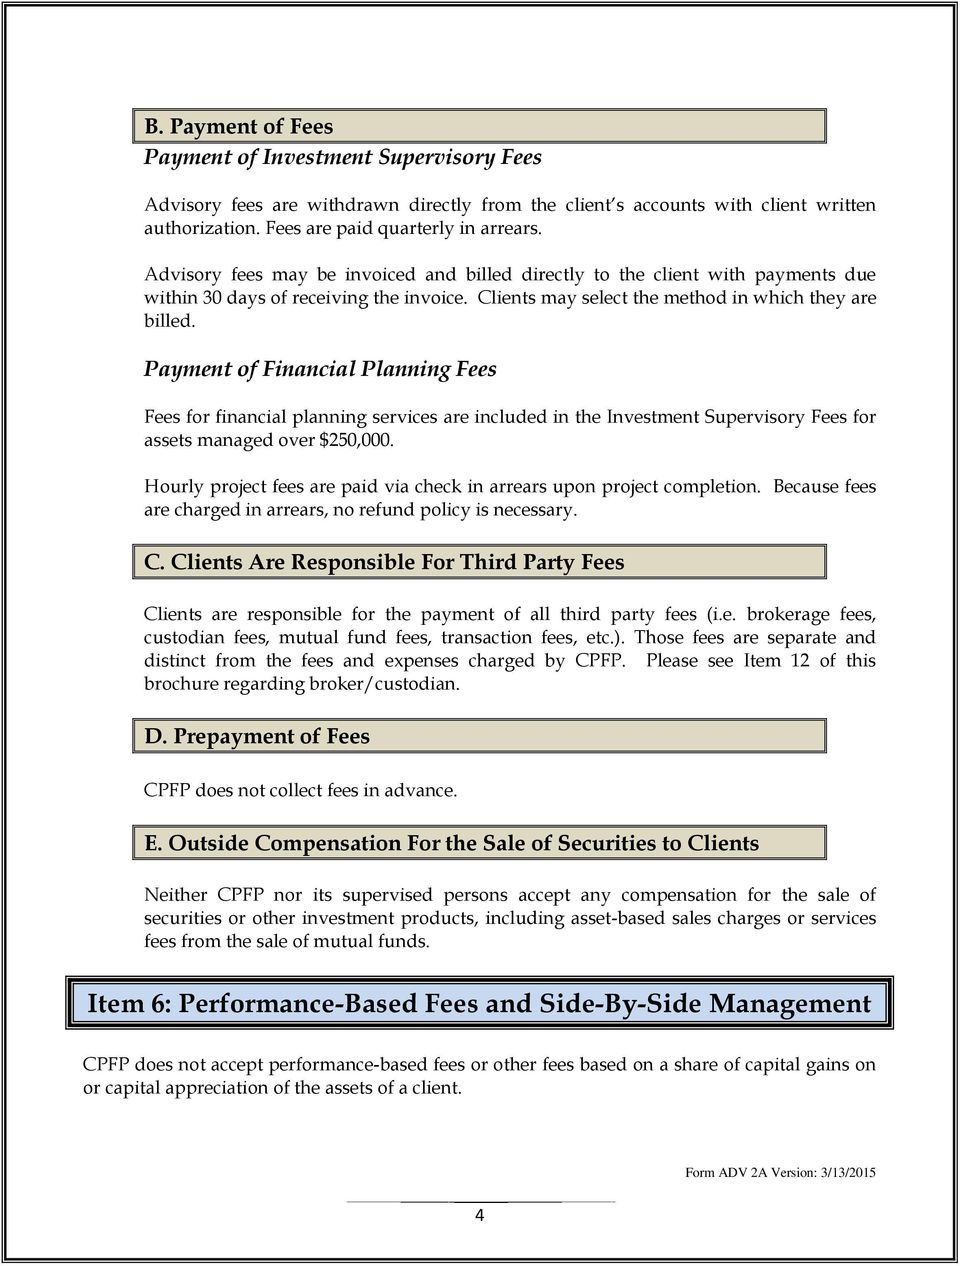 Payment of Financial Planning Fees Fees for financial planning services are included in the Investment Supervisory Fees for assets managed over $250,000.